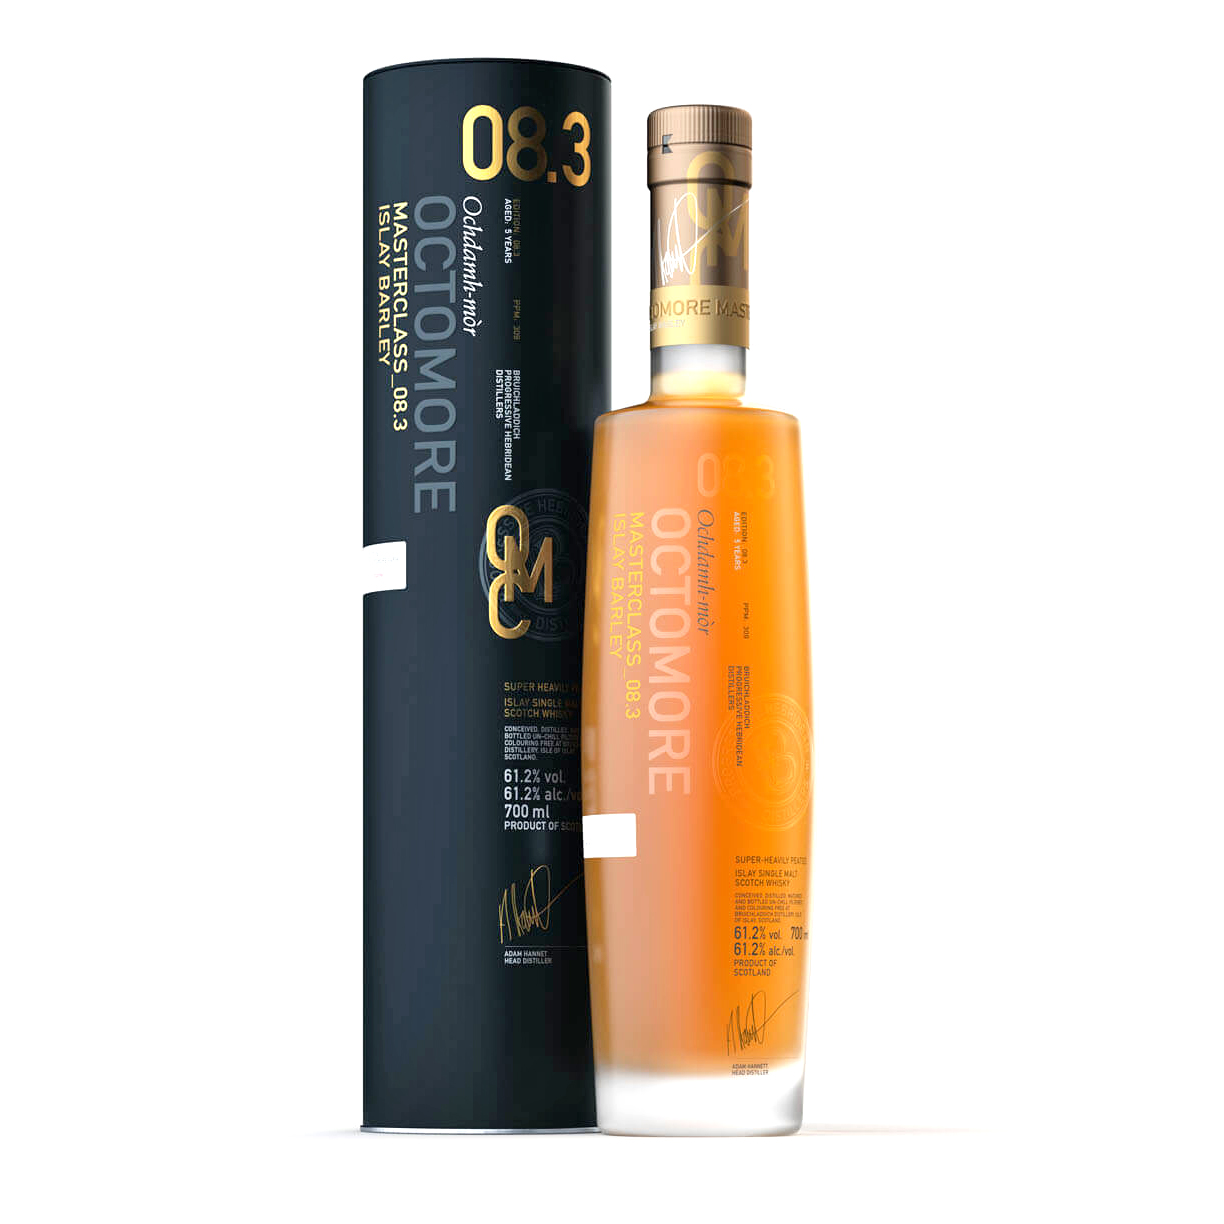 OCTOMORE 08.3/ 309 PPM